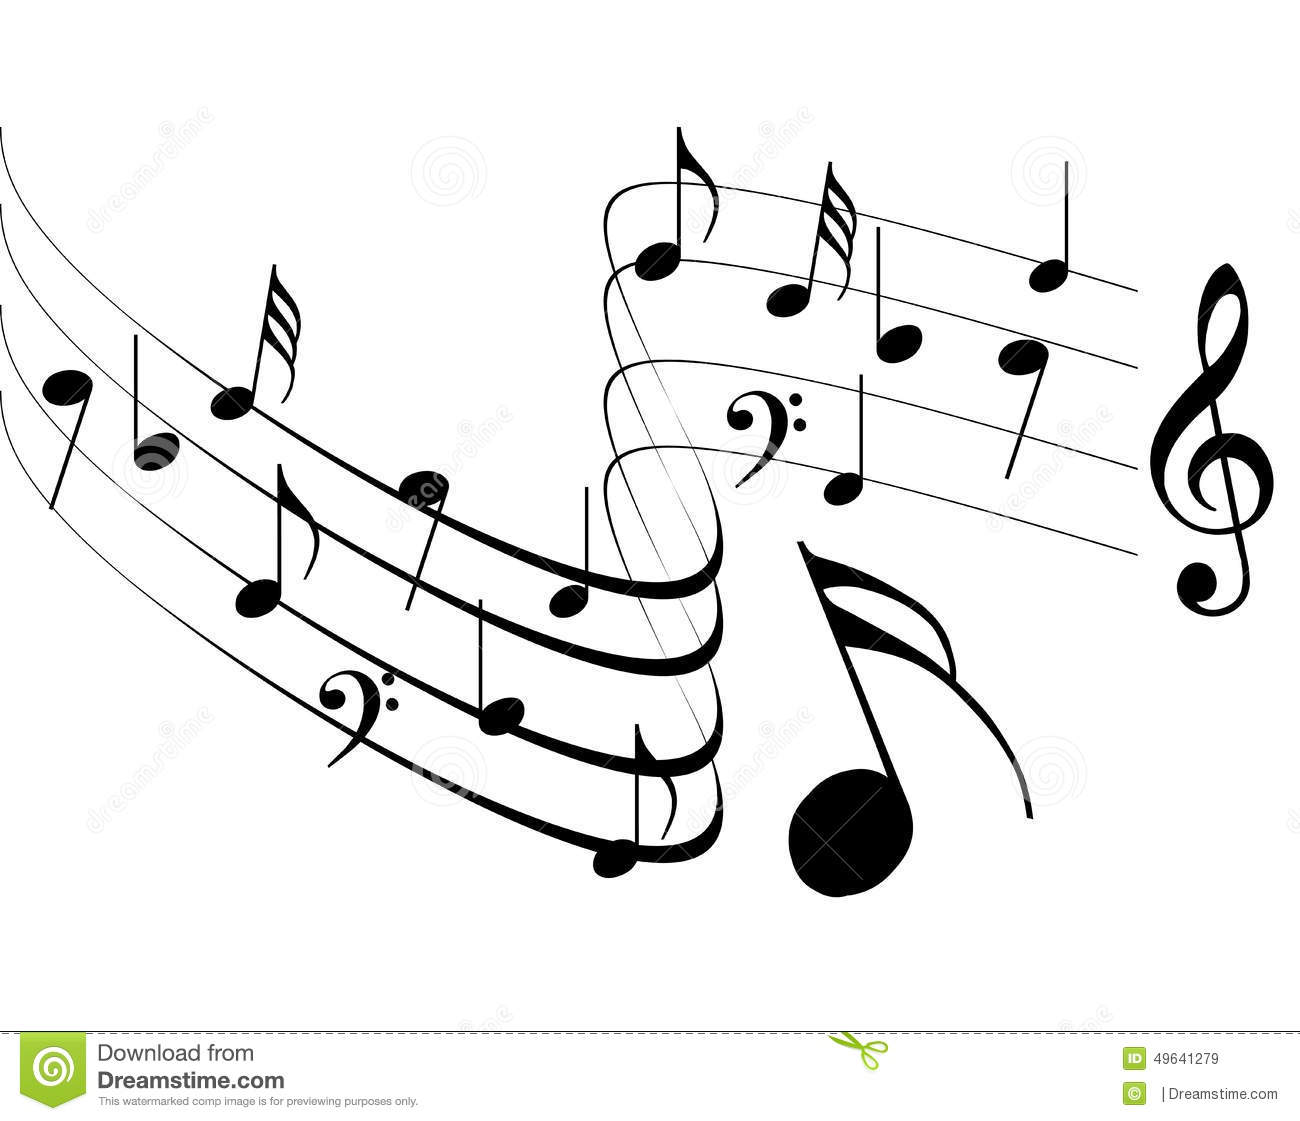 Free simple music black and white clipart svg free library Free Music Clipart Black And White svg free library